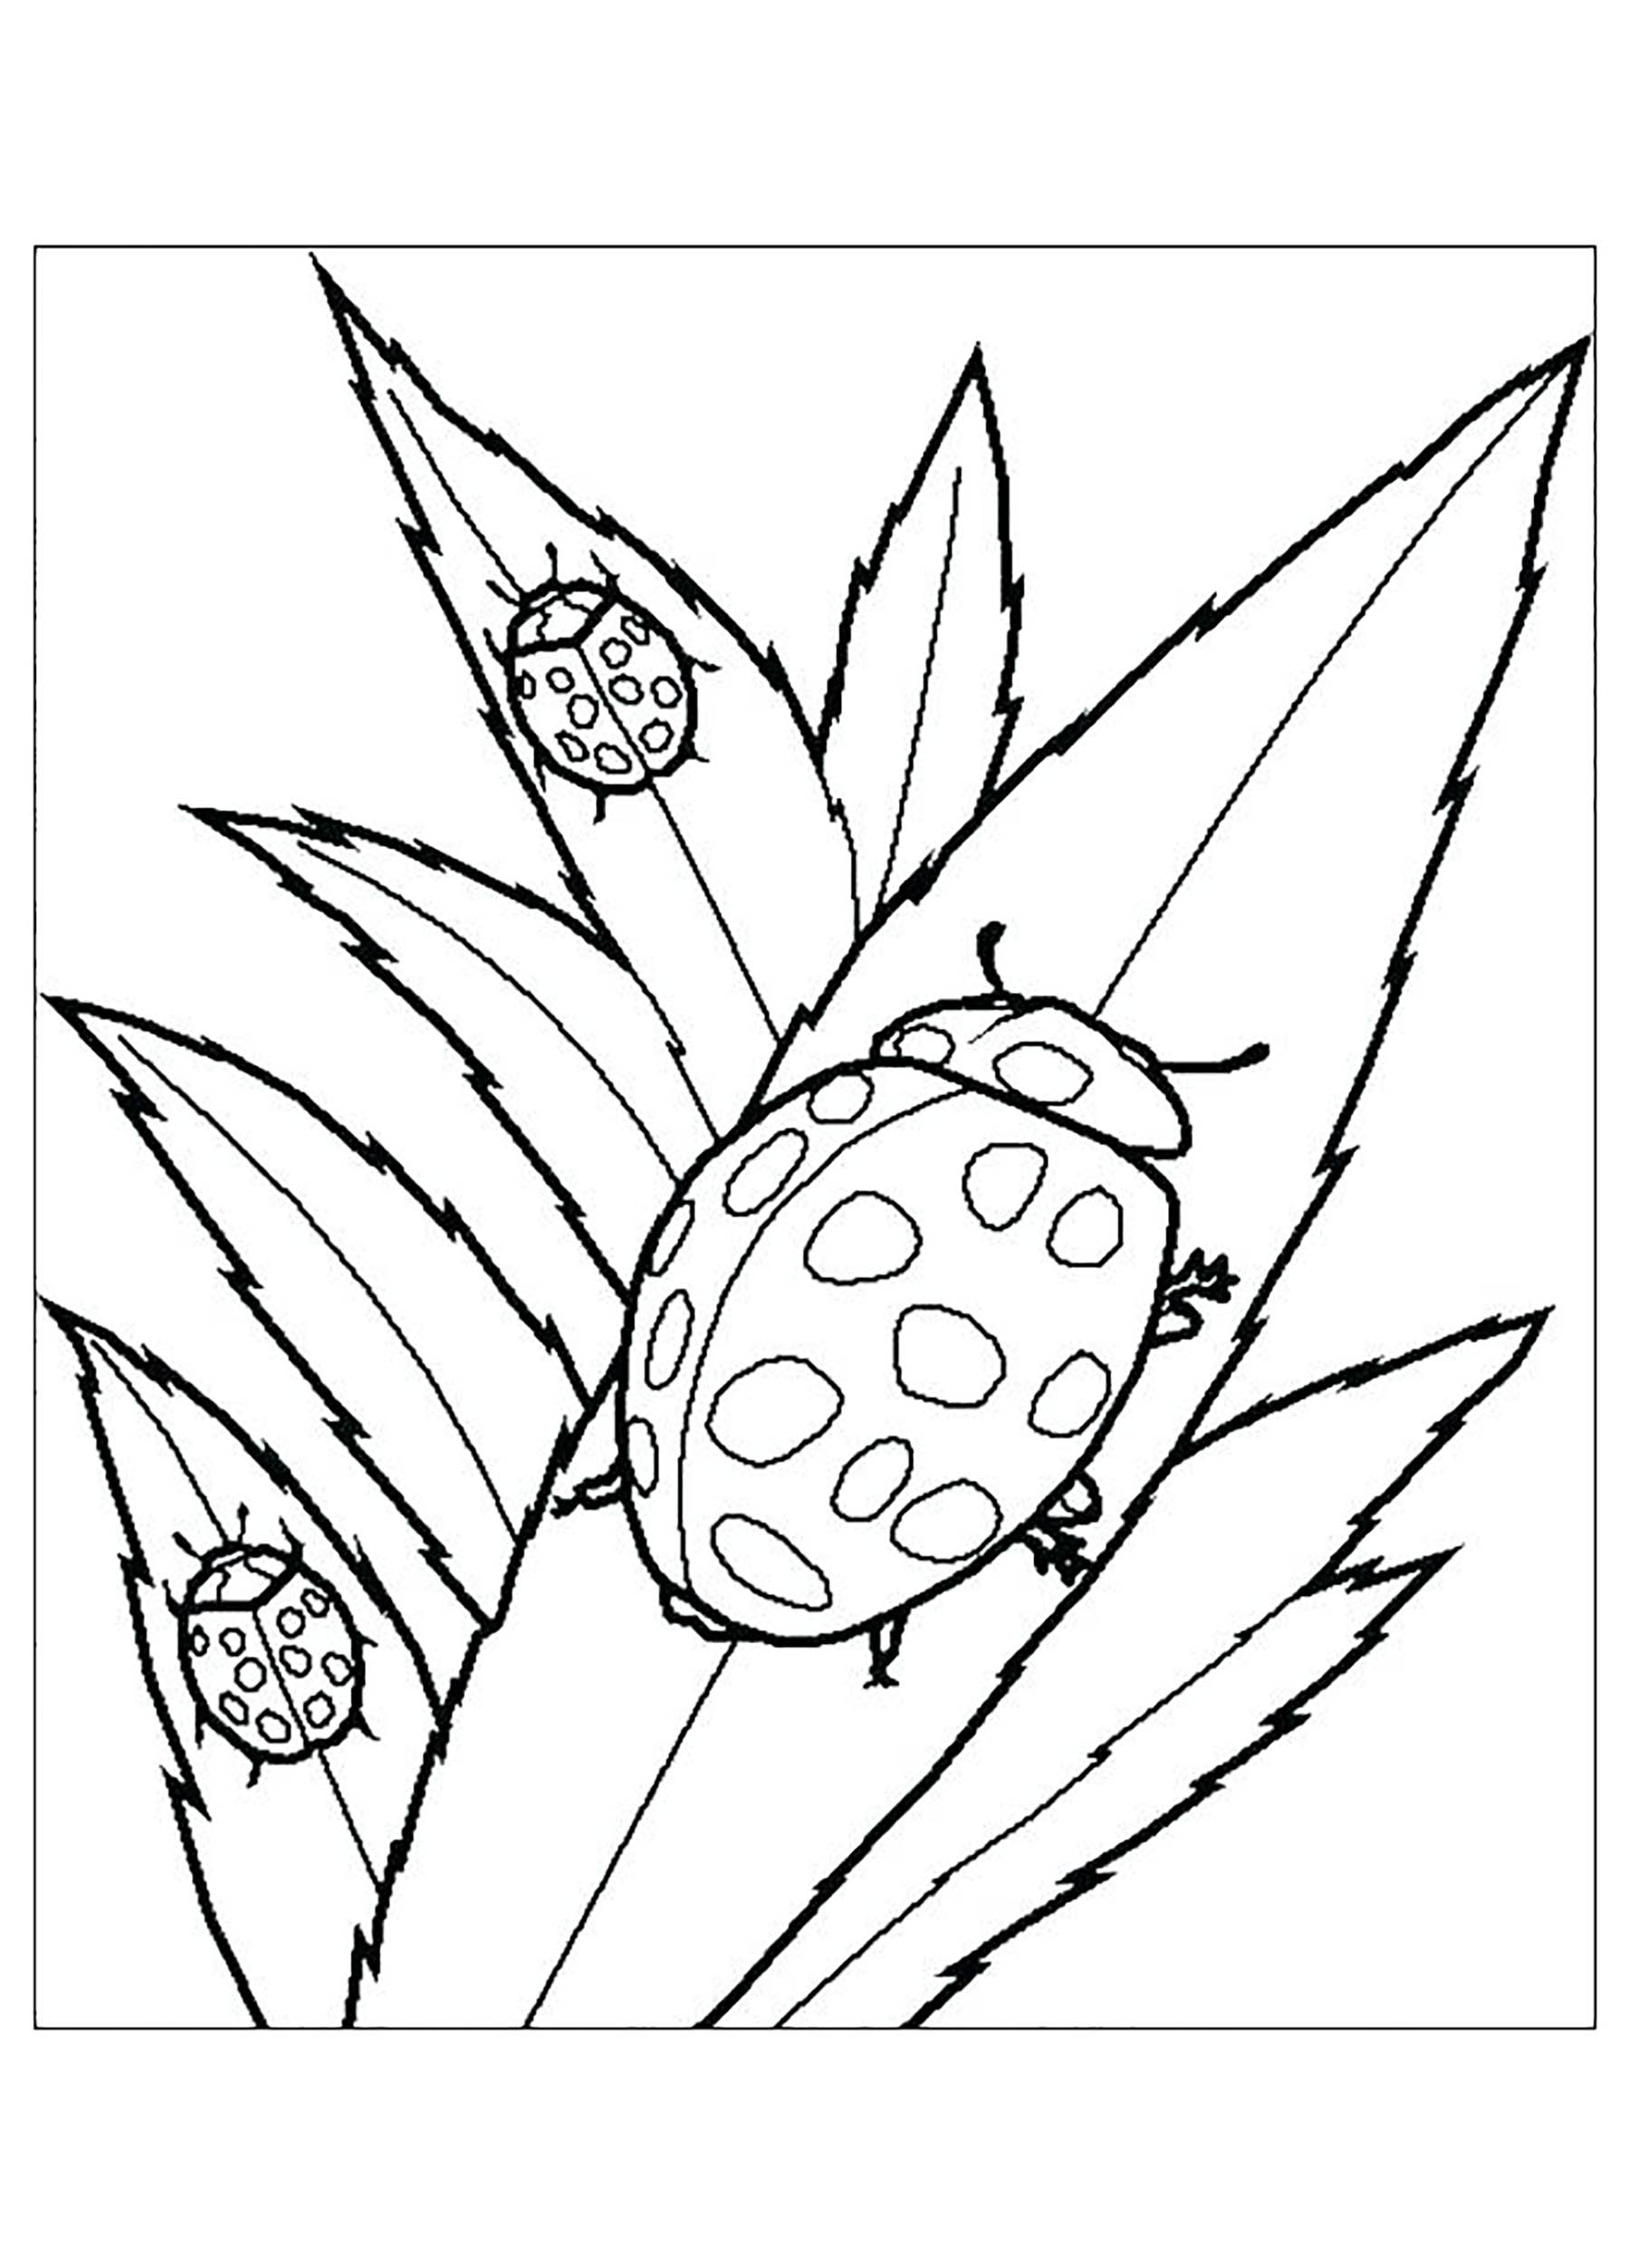 Beautiful Insects coloring page